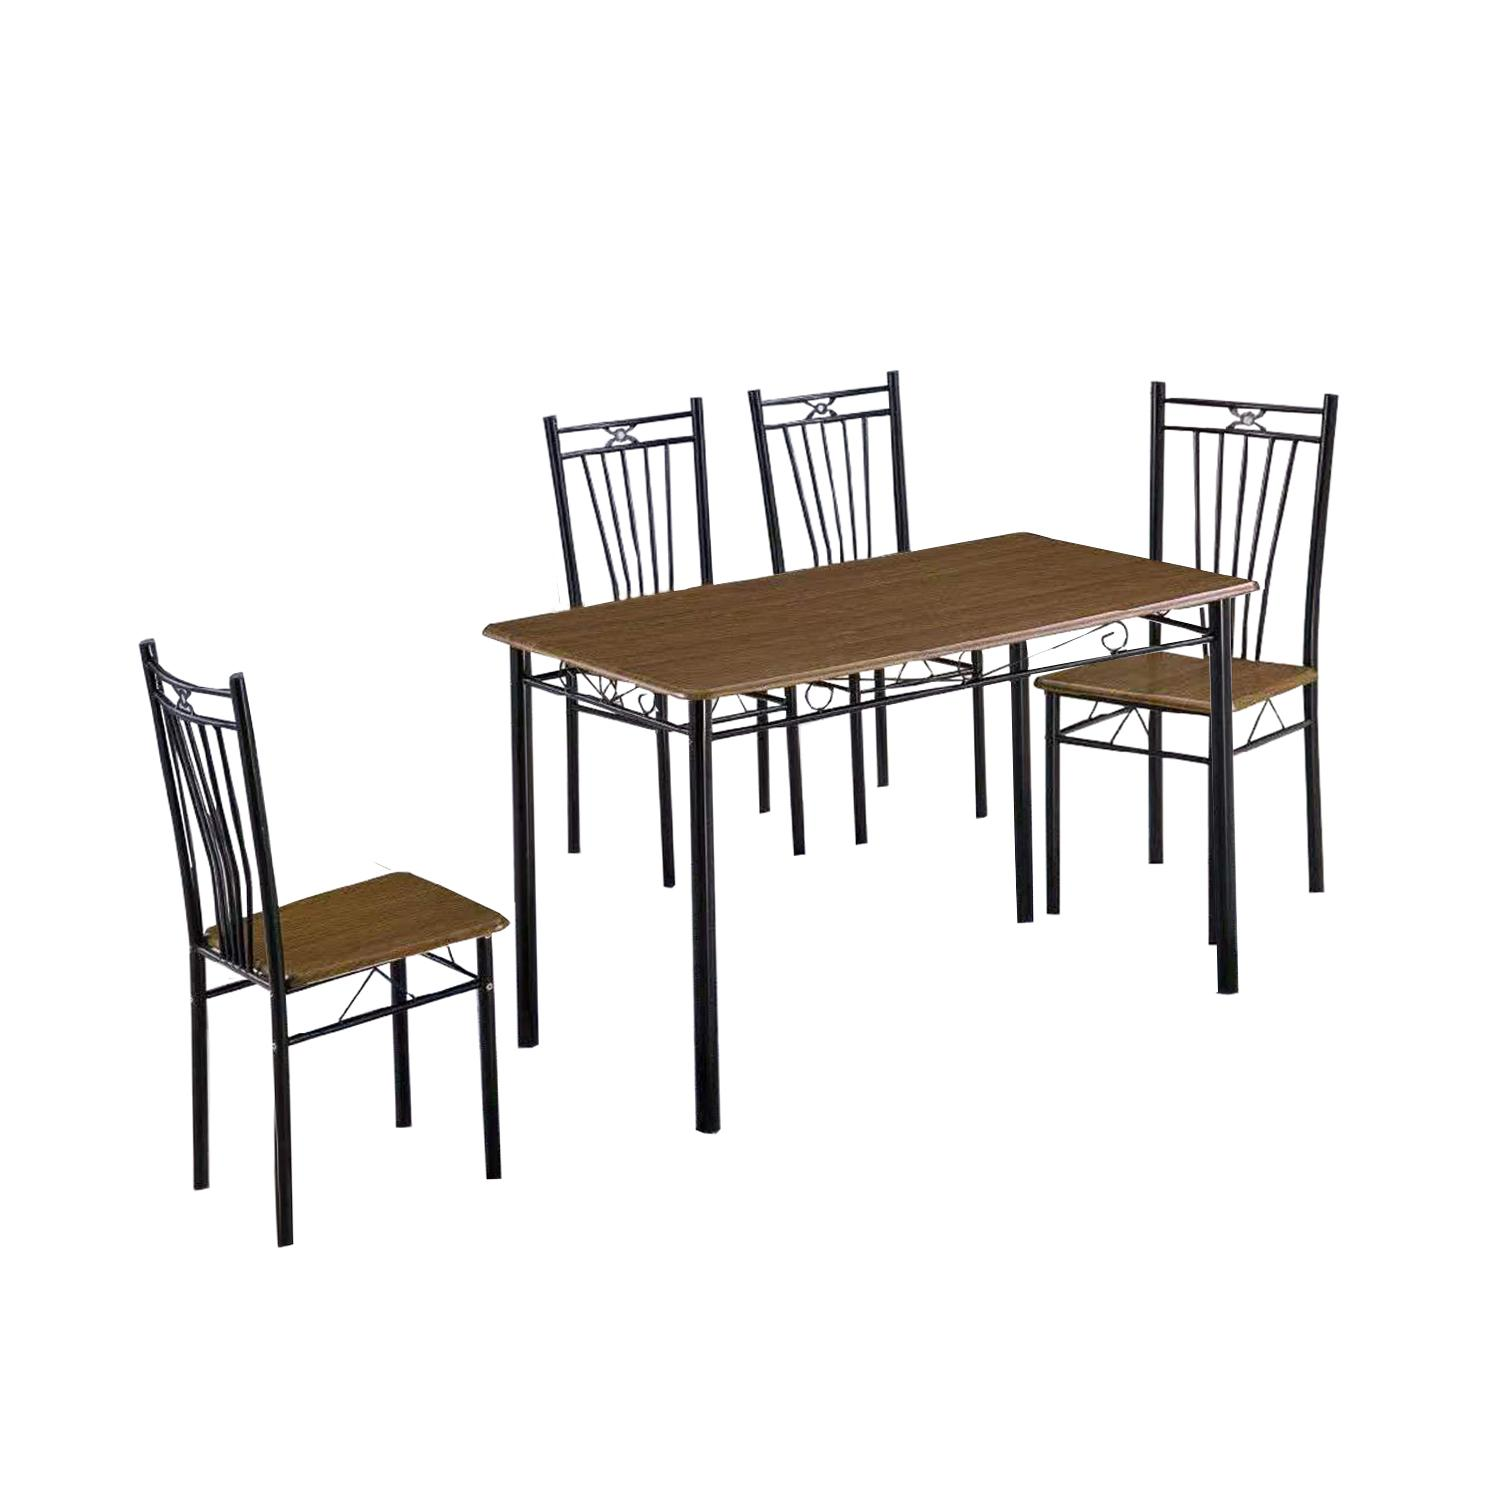 LIVING MALL_Narito Dining Set in Cappuccino_FREE DELIVERY